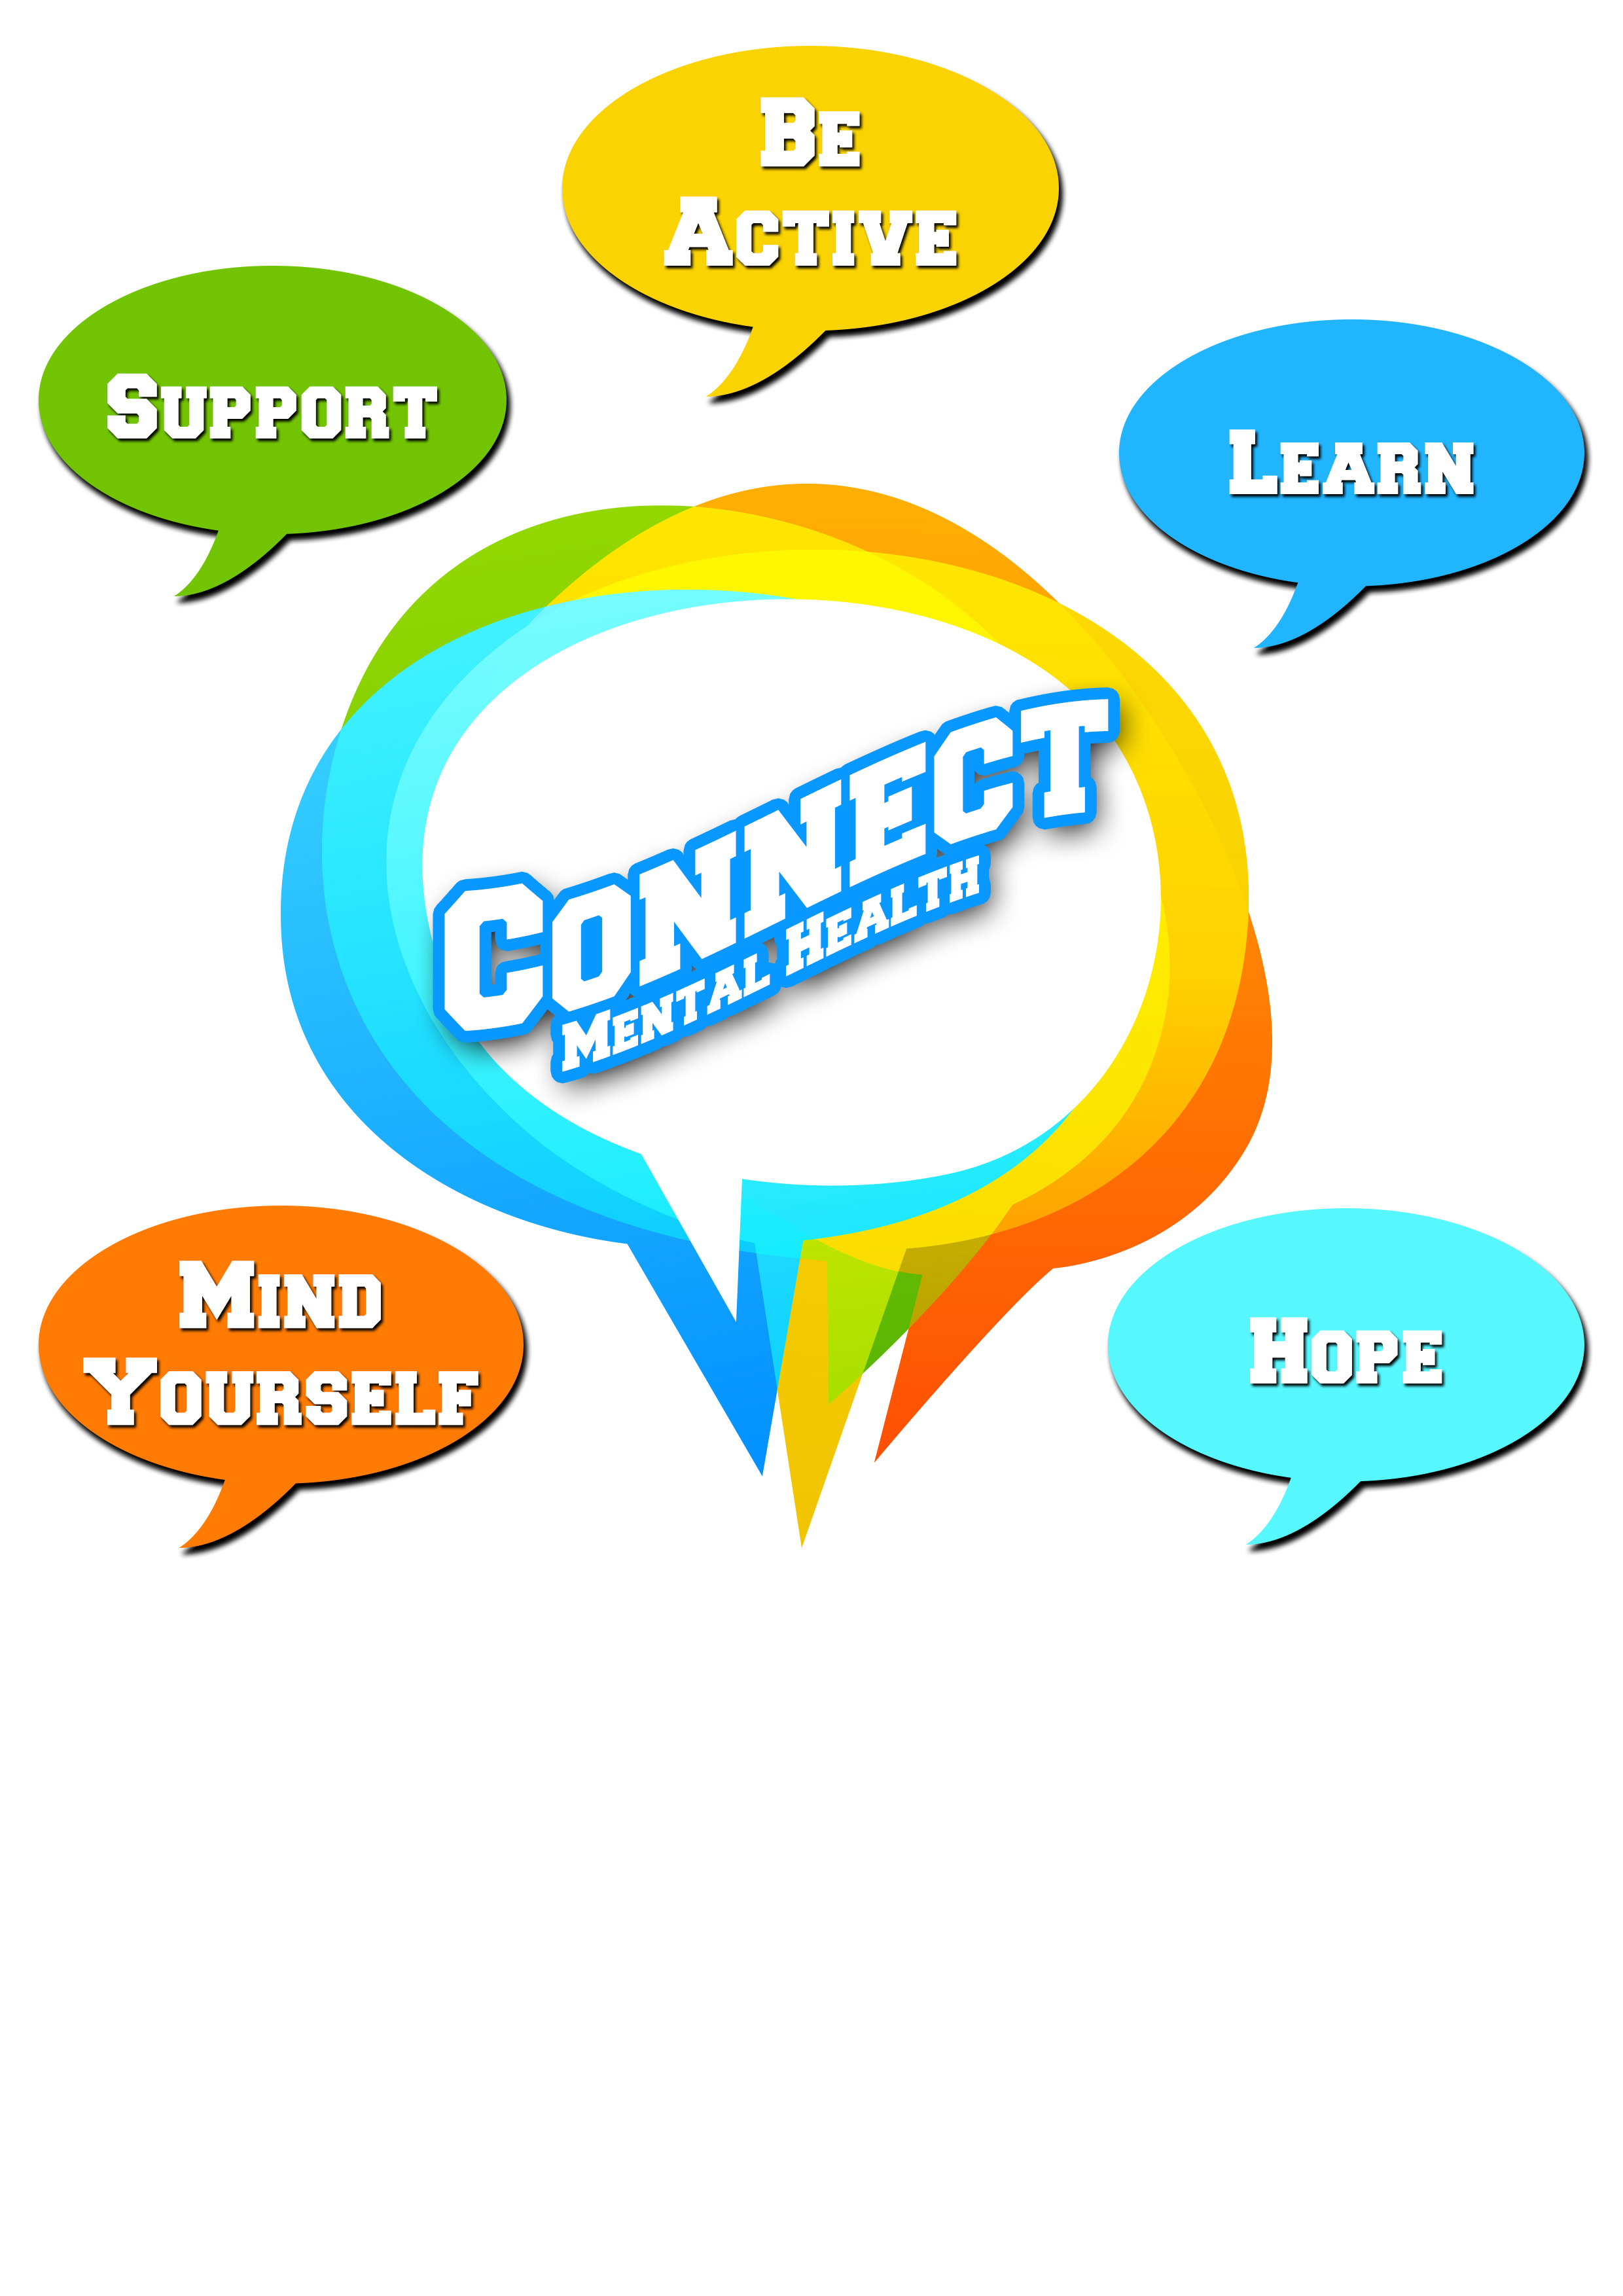 health connect Health connect america offers in-home family preservation services that are short-term, highly intensive, home-based interventions designed to protect, treat and support families with at least one child at imminent risk of being placed in custody.